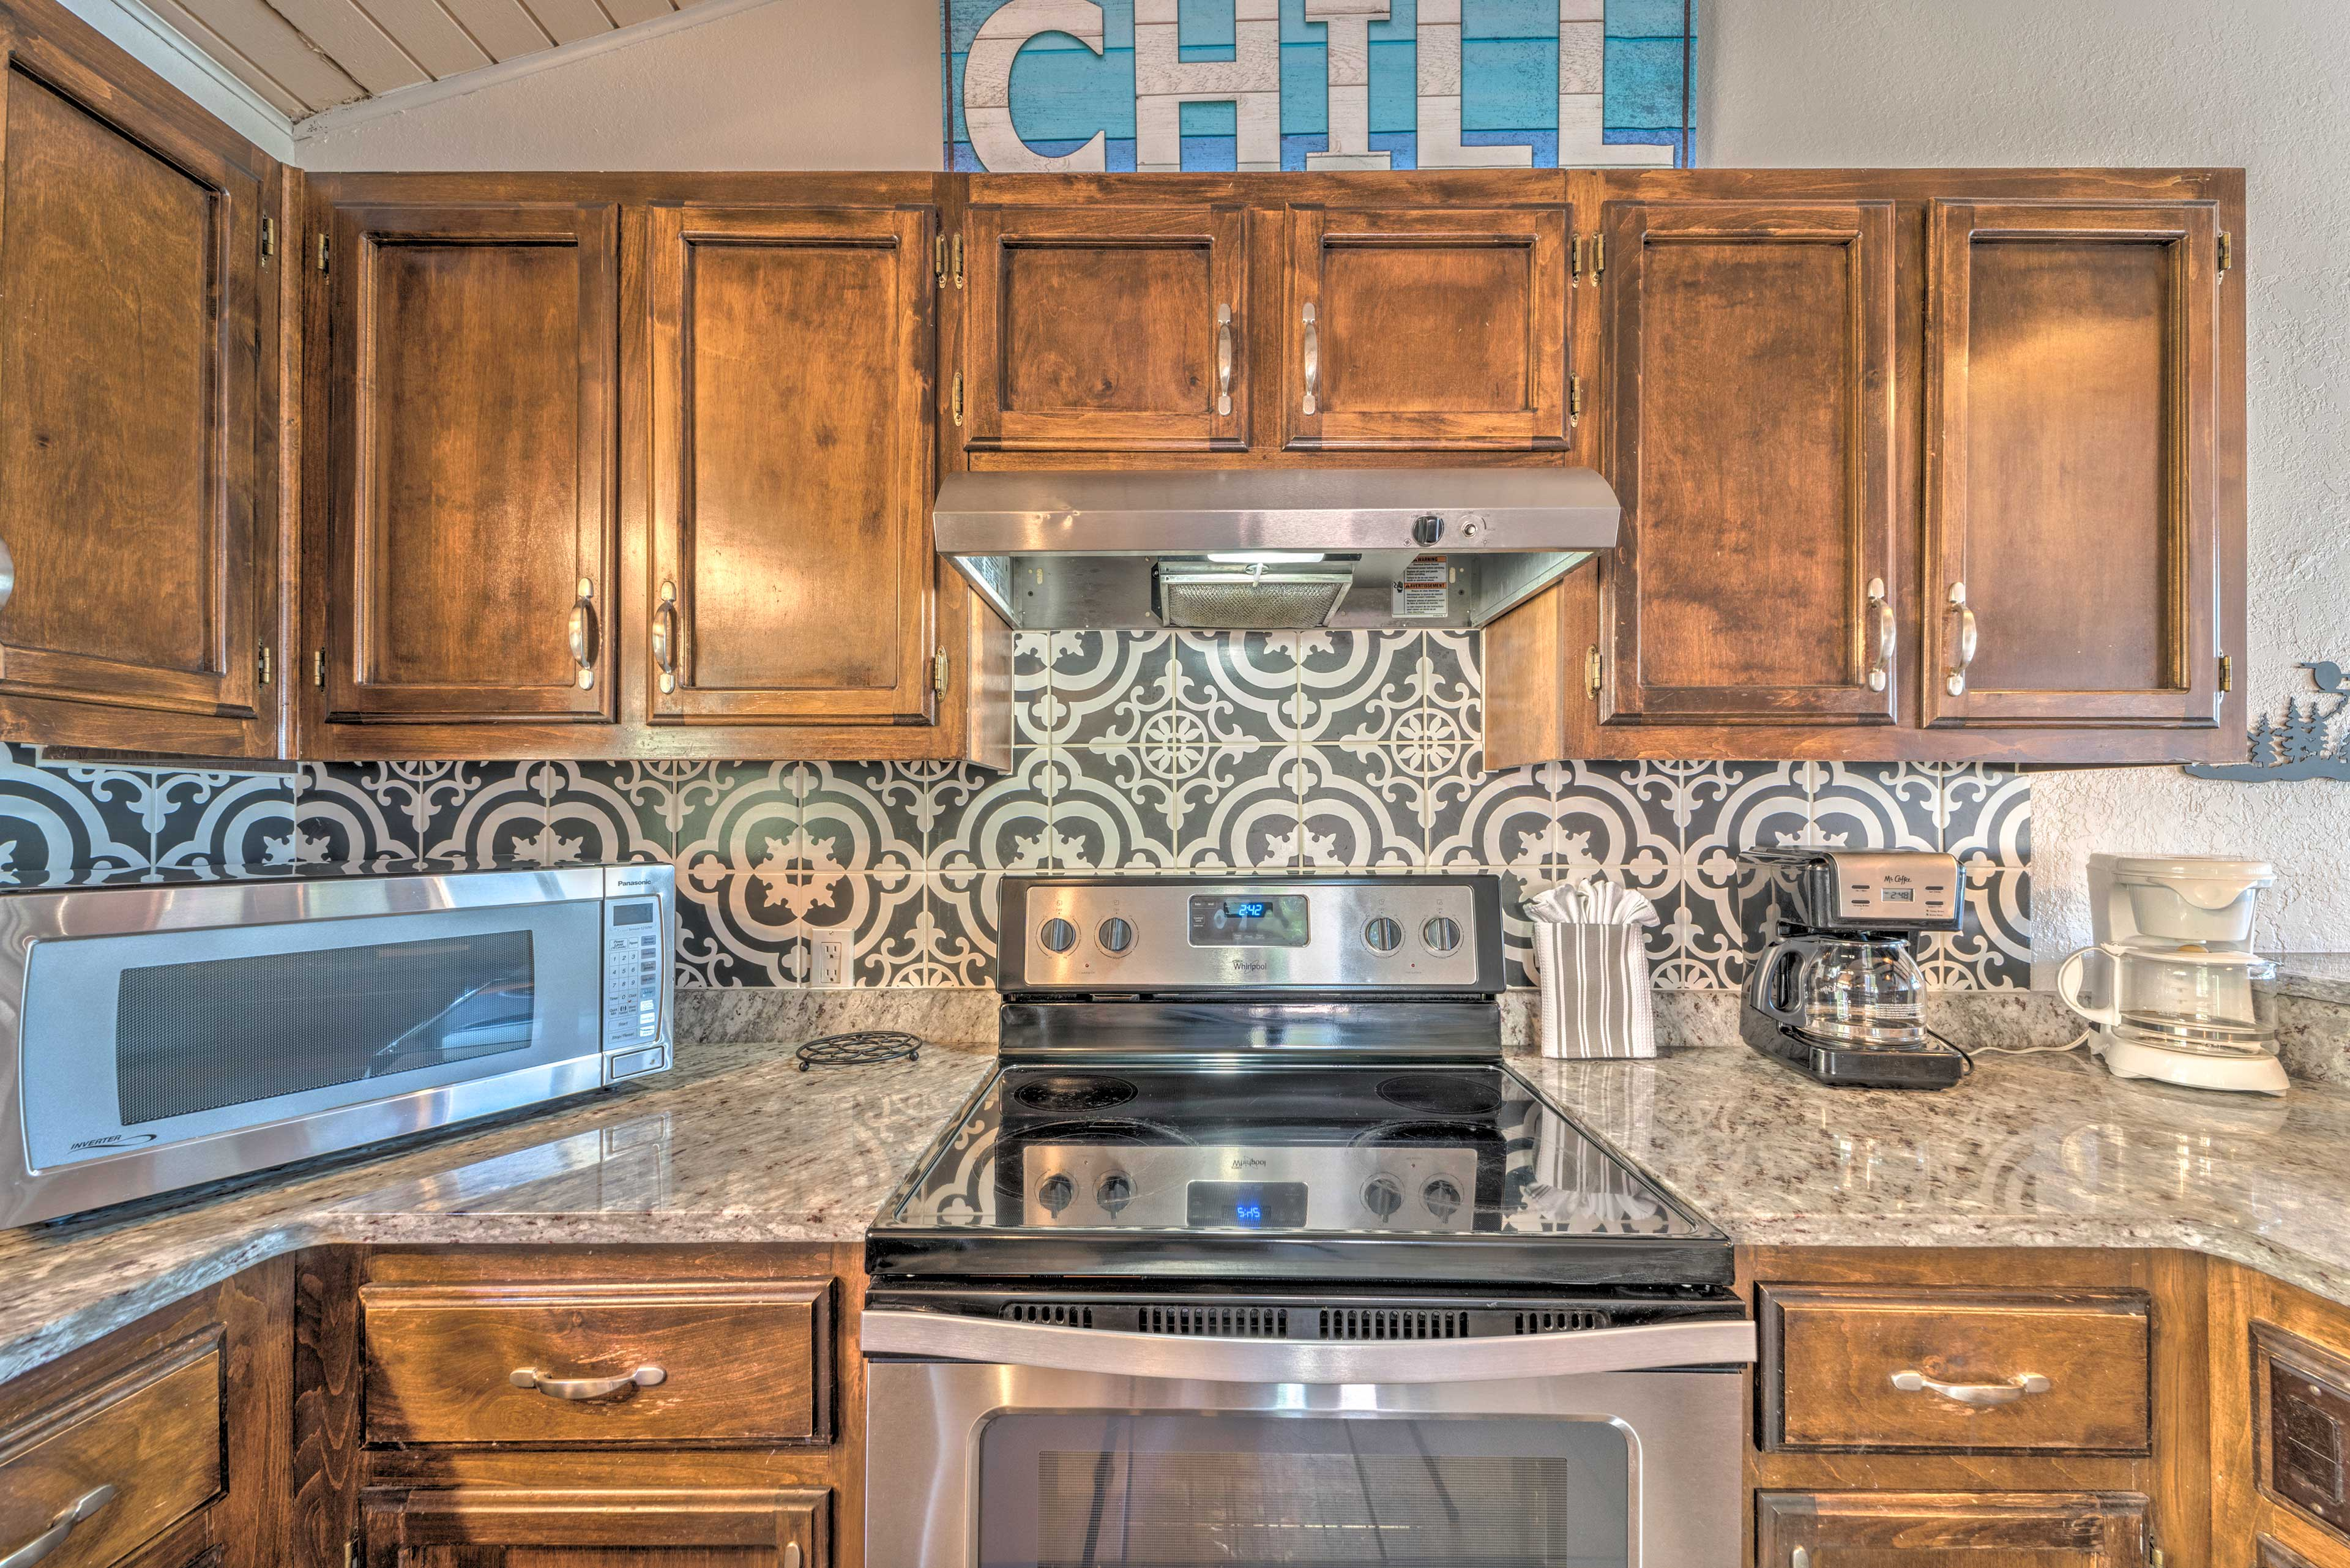 Fully Equipped Kitchen | Stainless Steel Appliances | Granite Countertops